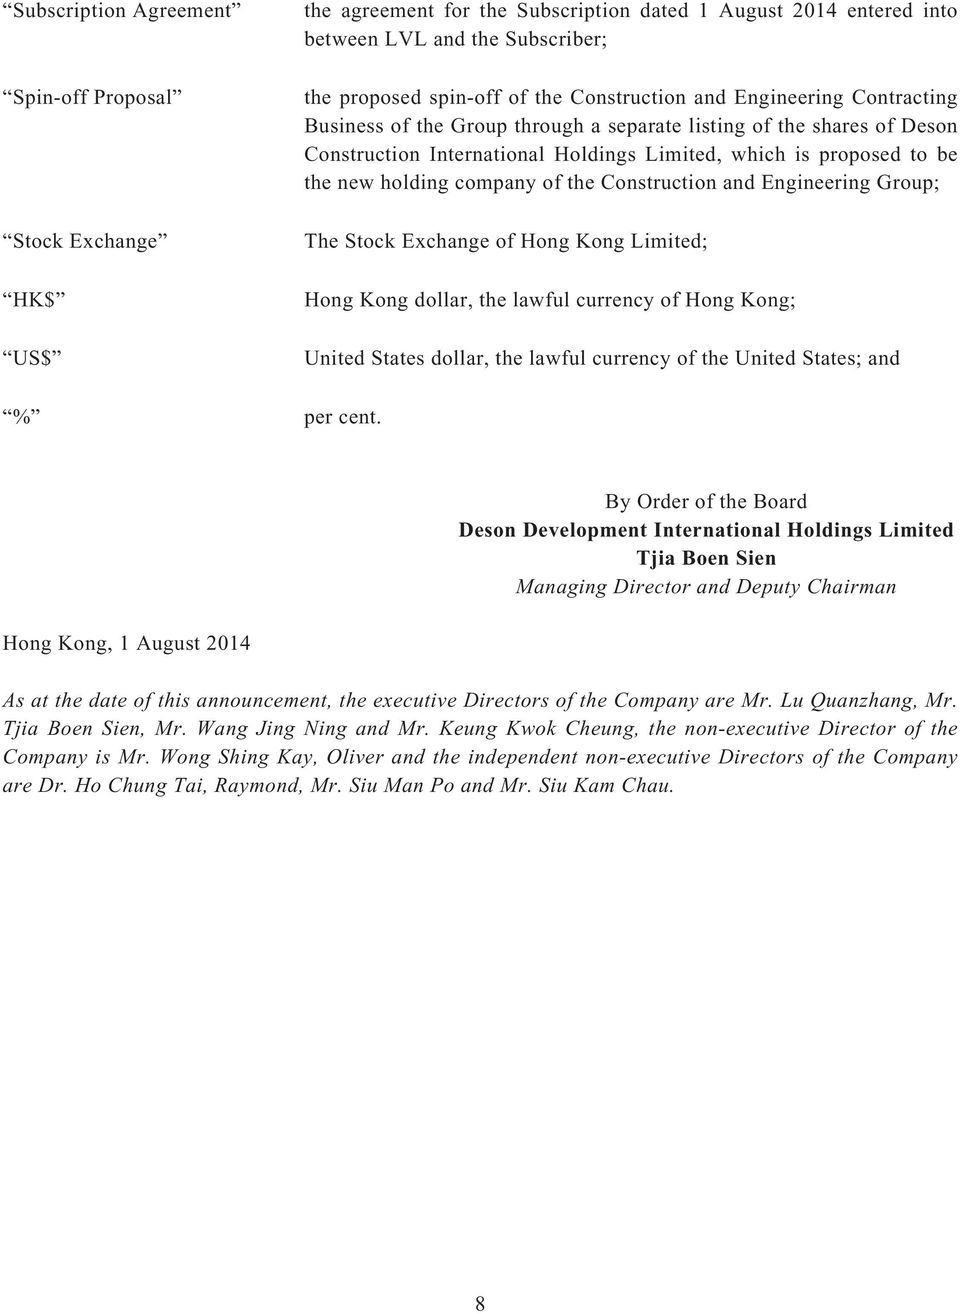 company of the Construction and Engineering Group; The Stock Exchange of Hong Kong Limited; Hong Kong dollar, the lawful currency of Hong Kong; United States dollar, the lawful currency of the United